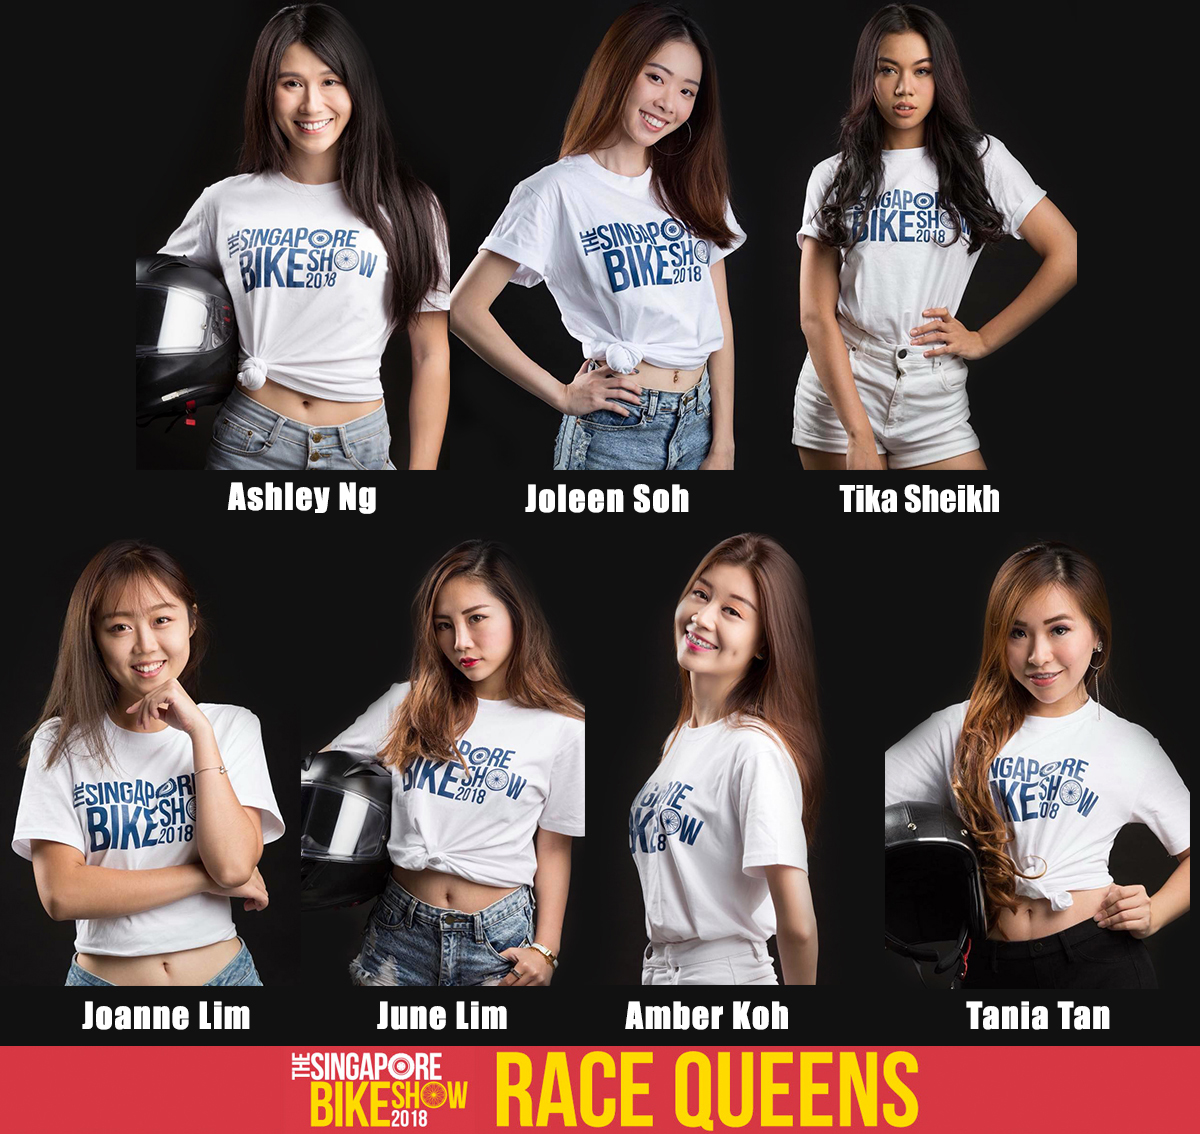 2018 Singapore Bike Show - Race Queen Contest (Preview)